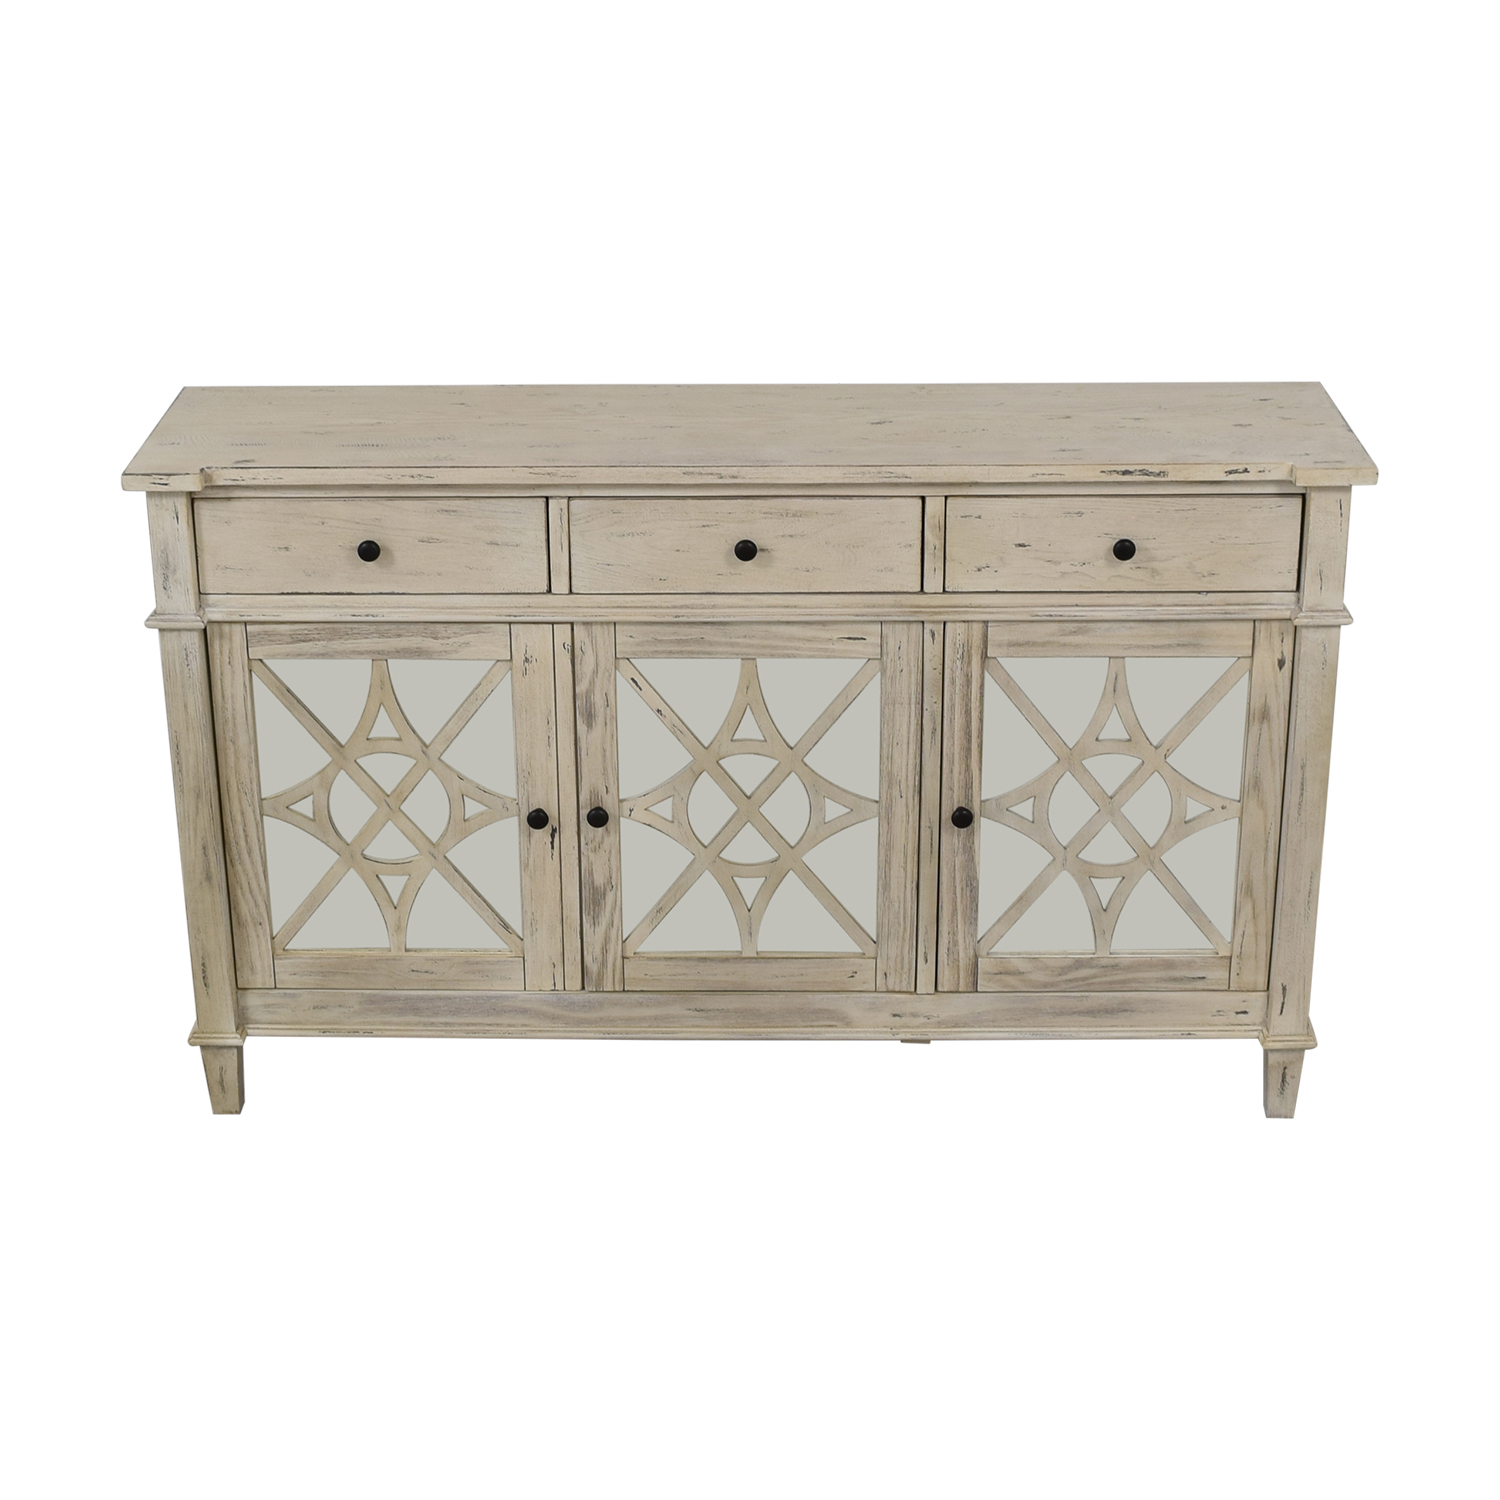 Coast to Coast Accents Coast to Coast Accents Three Drawer Credenza used